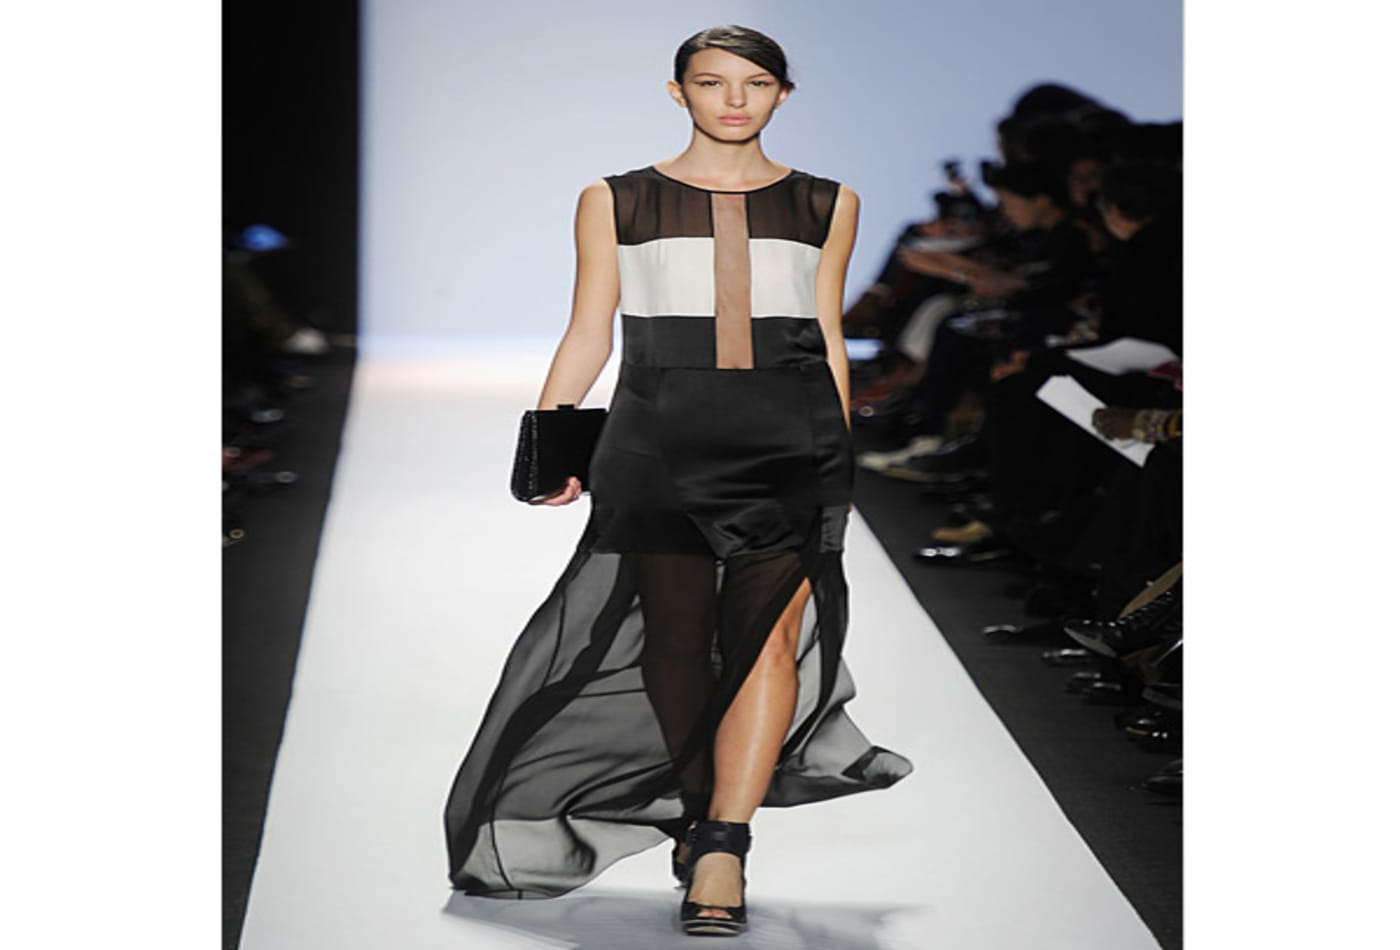 fall-fashion-week-2012-BCBC-003.jpg